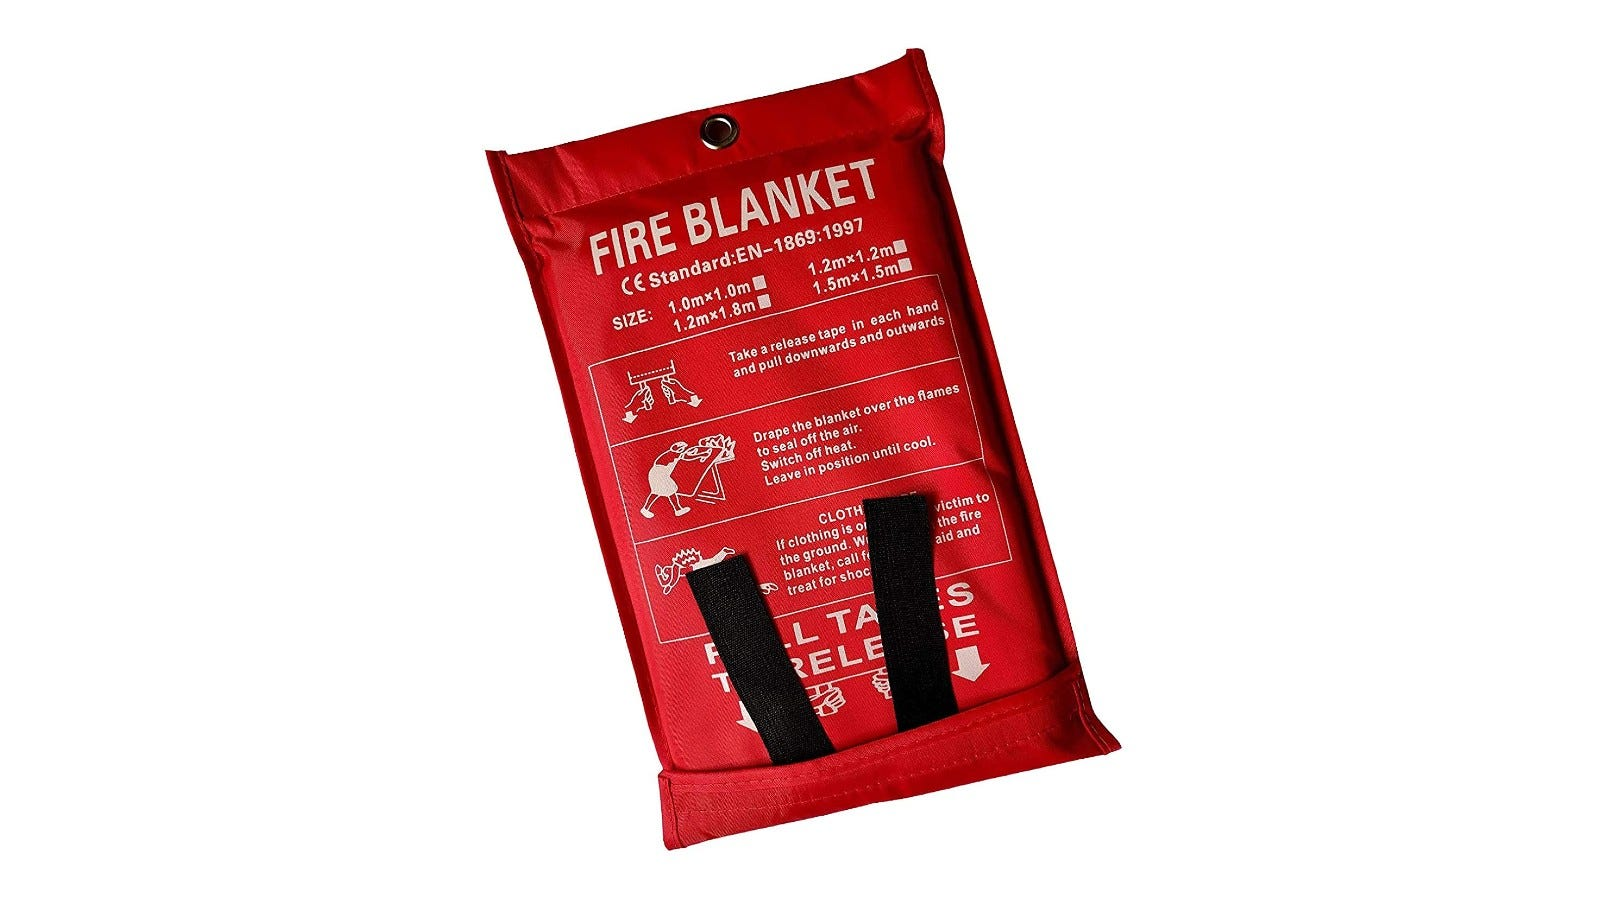 a fire blanket in red packaging